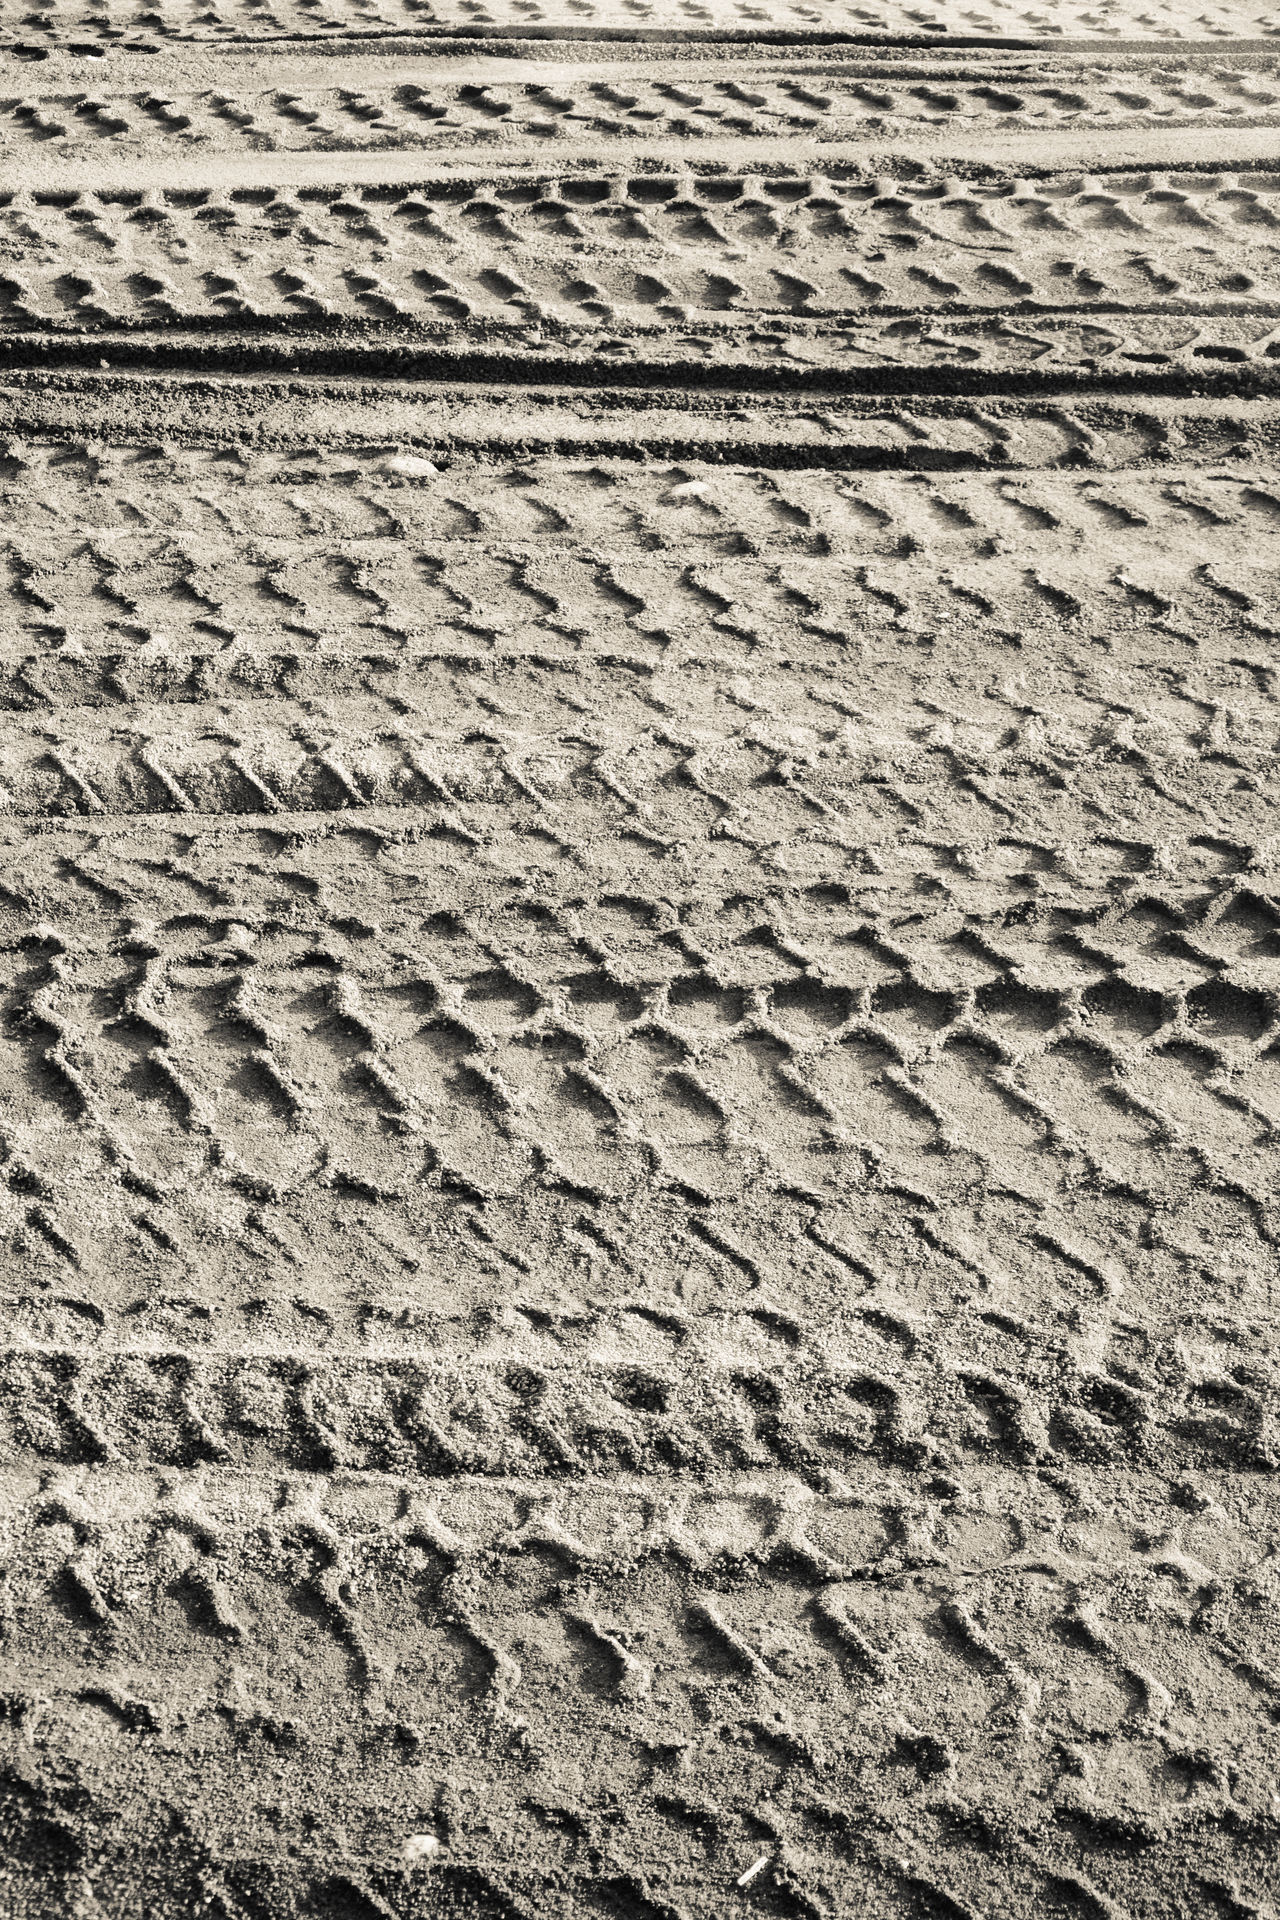 Arid Climate Backgrounds Beach Close-up Day Full Frame Impronte Nature No People Outdoors Pattern Pneumatic Preumatik Print Sand Sand Dune Sand Print Tire Print Tire Track Art Is Everywhere